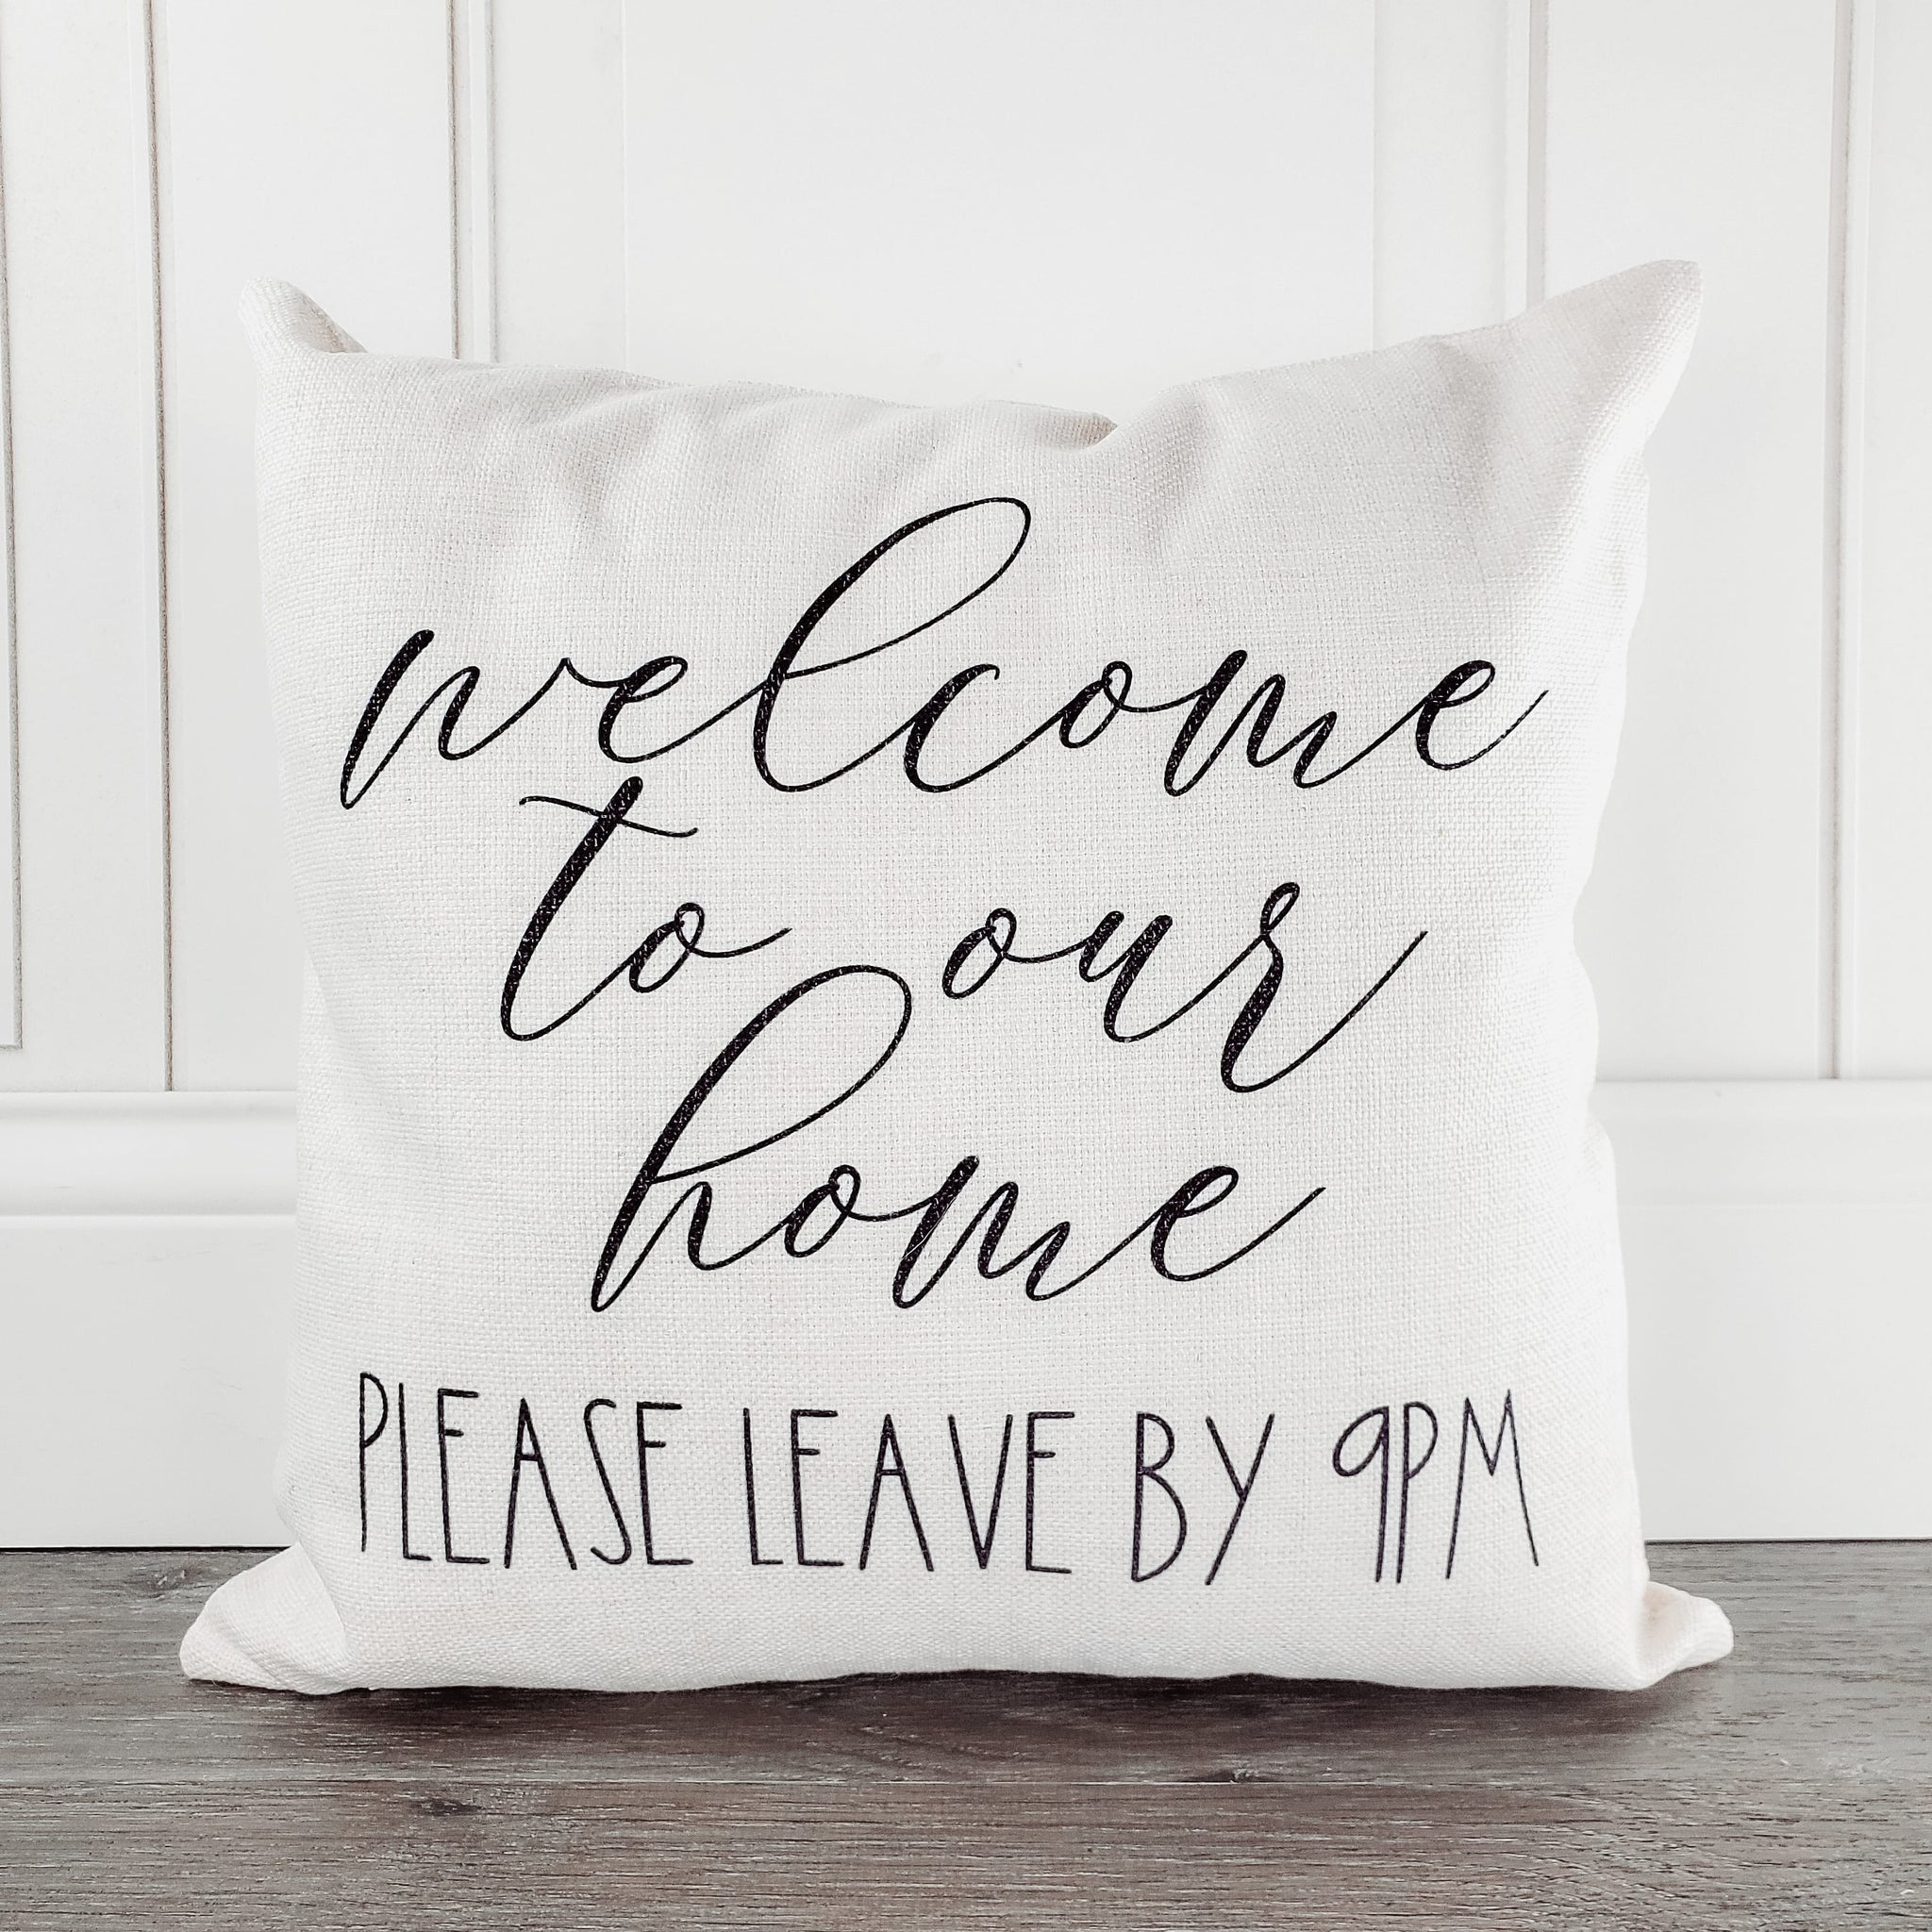 Welcome To Our Home Please Leave by 9PM Farmhouse Throw Pillow - Incandescently - Glitter Sparkle Throw Pillows - Farmhouse Decor